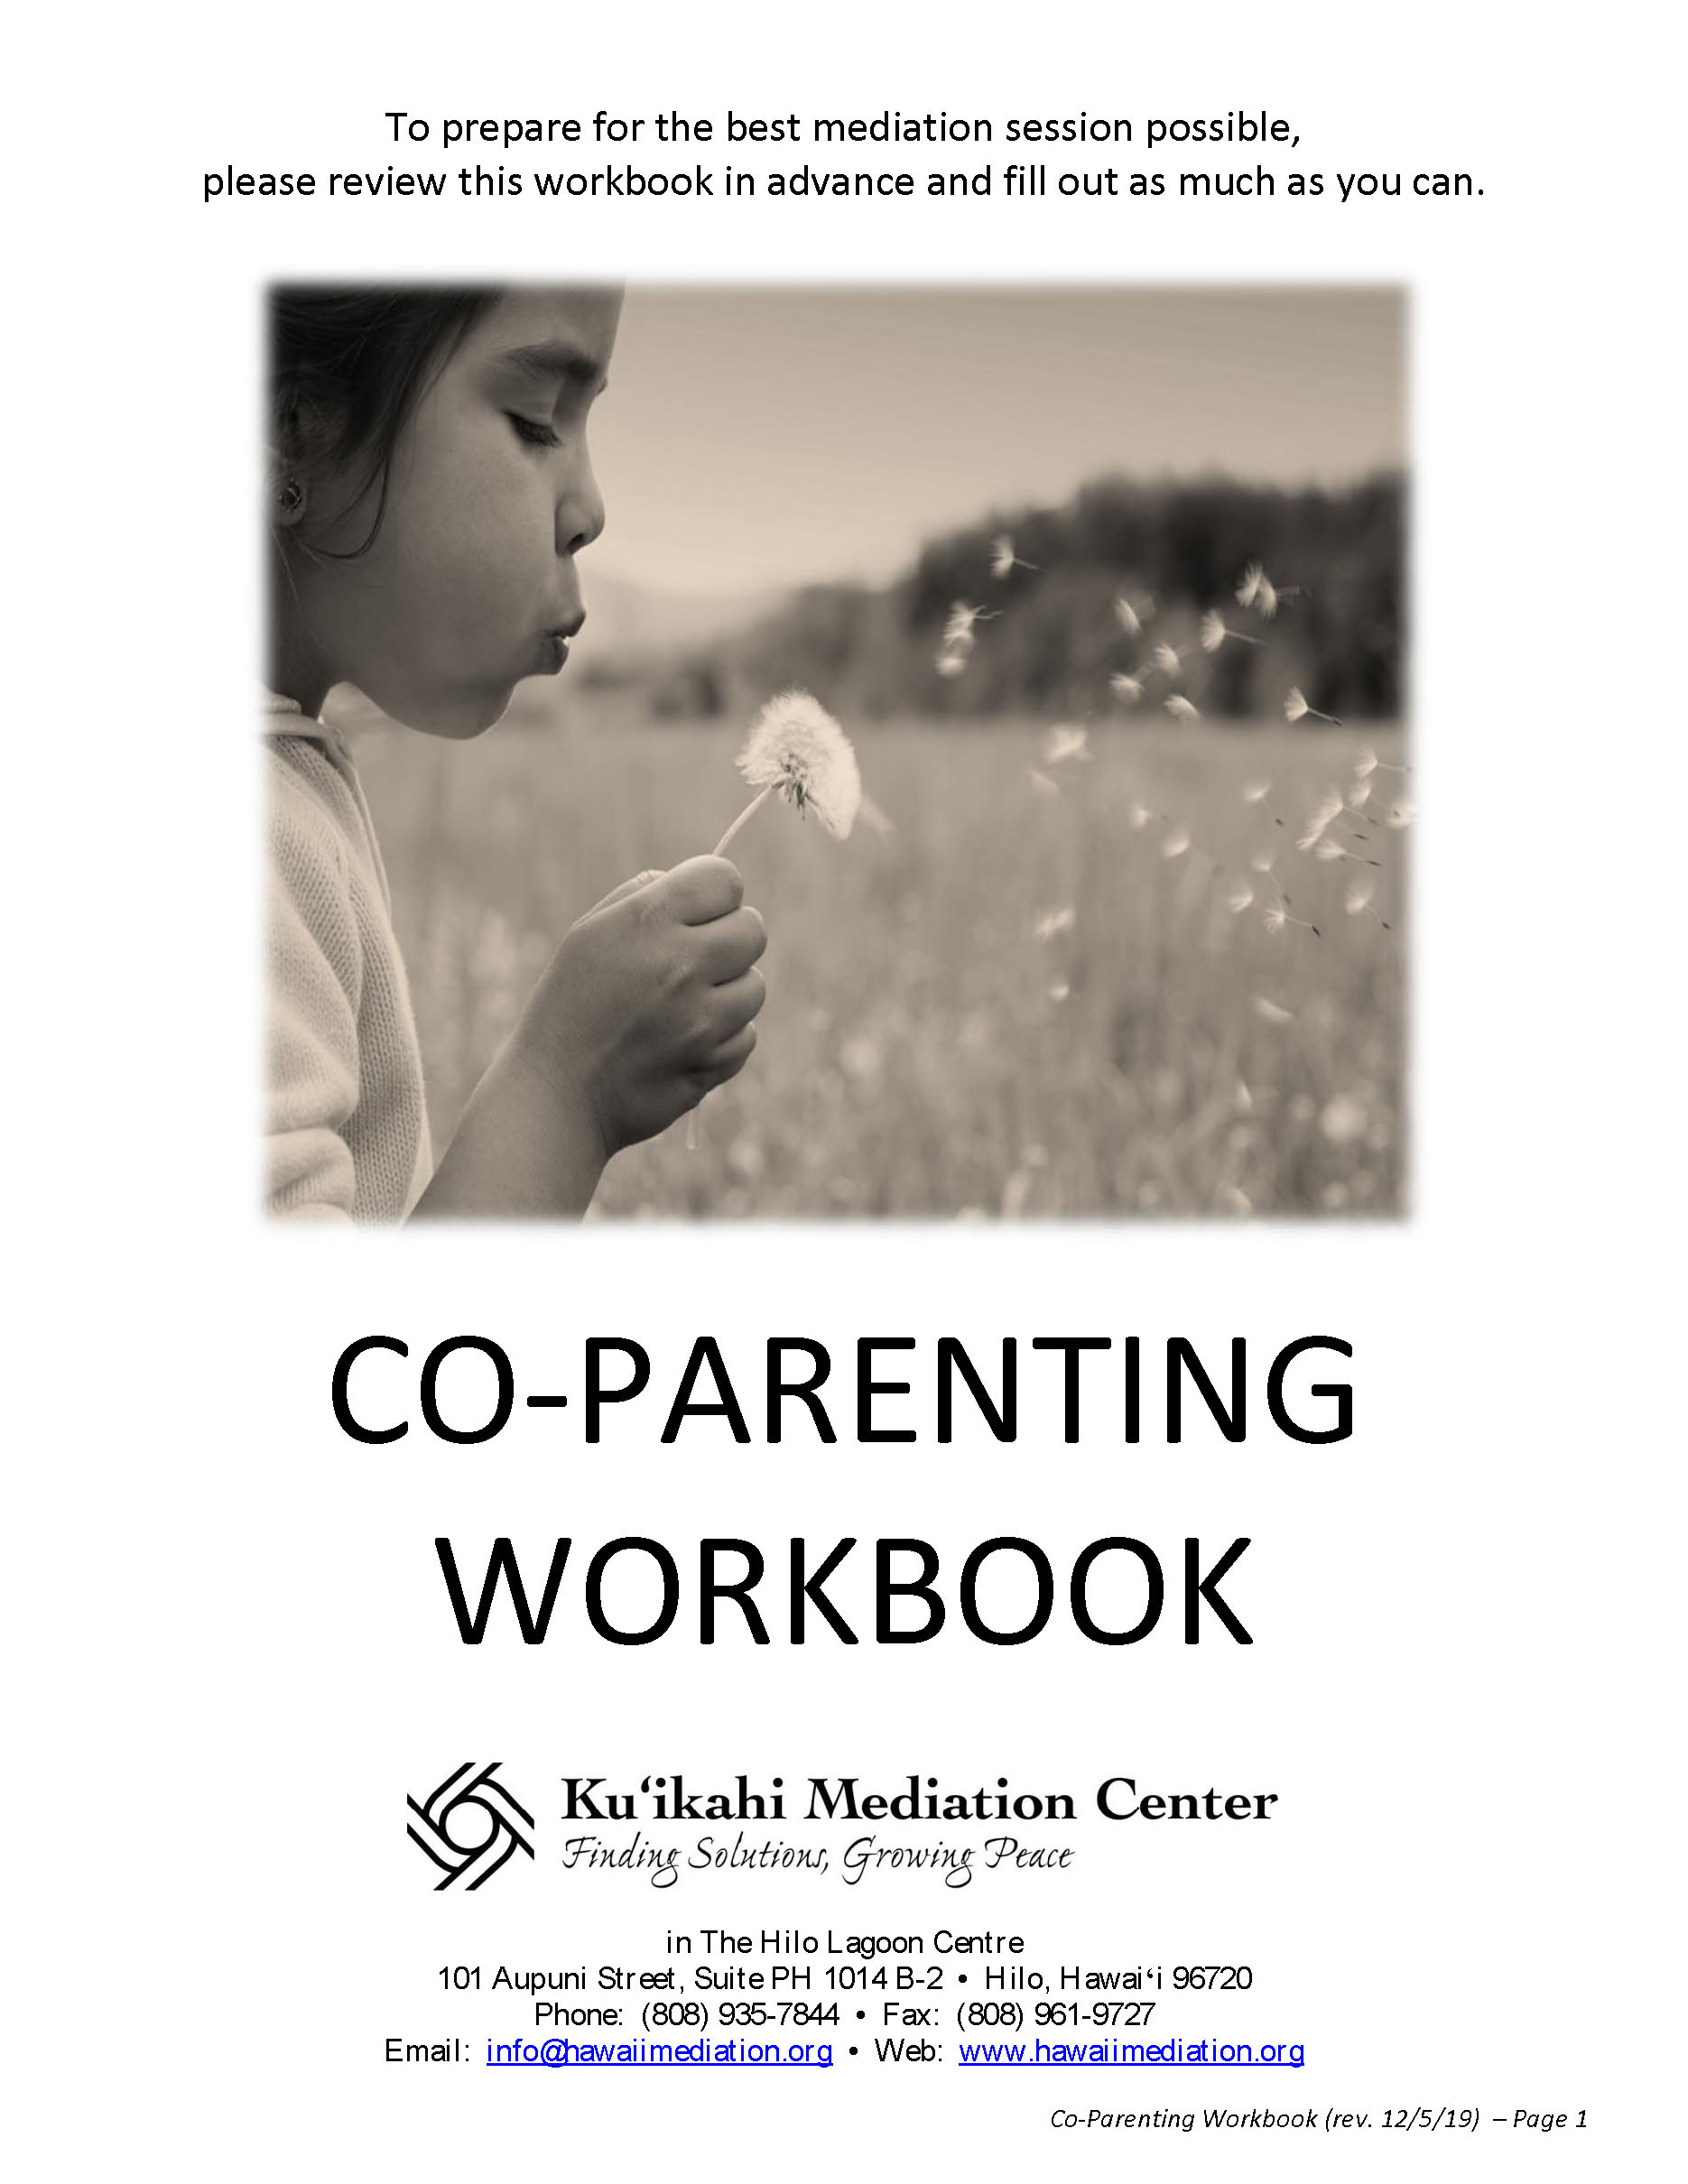 Co-Parenting Workbook